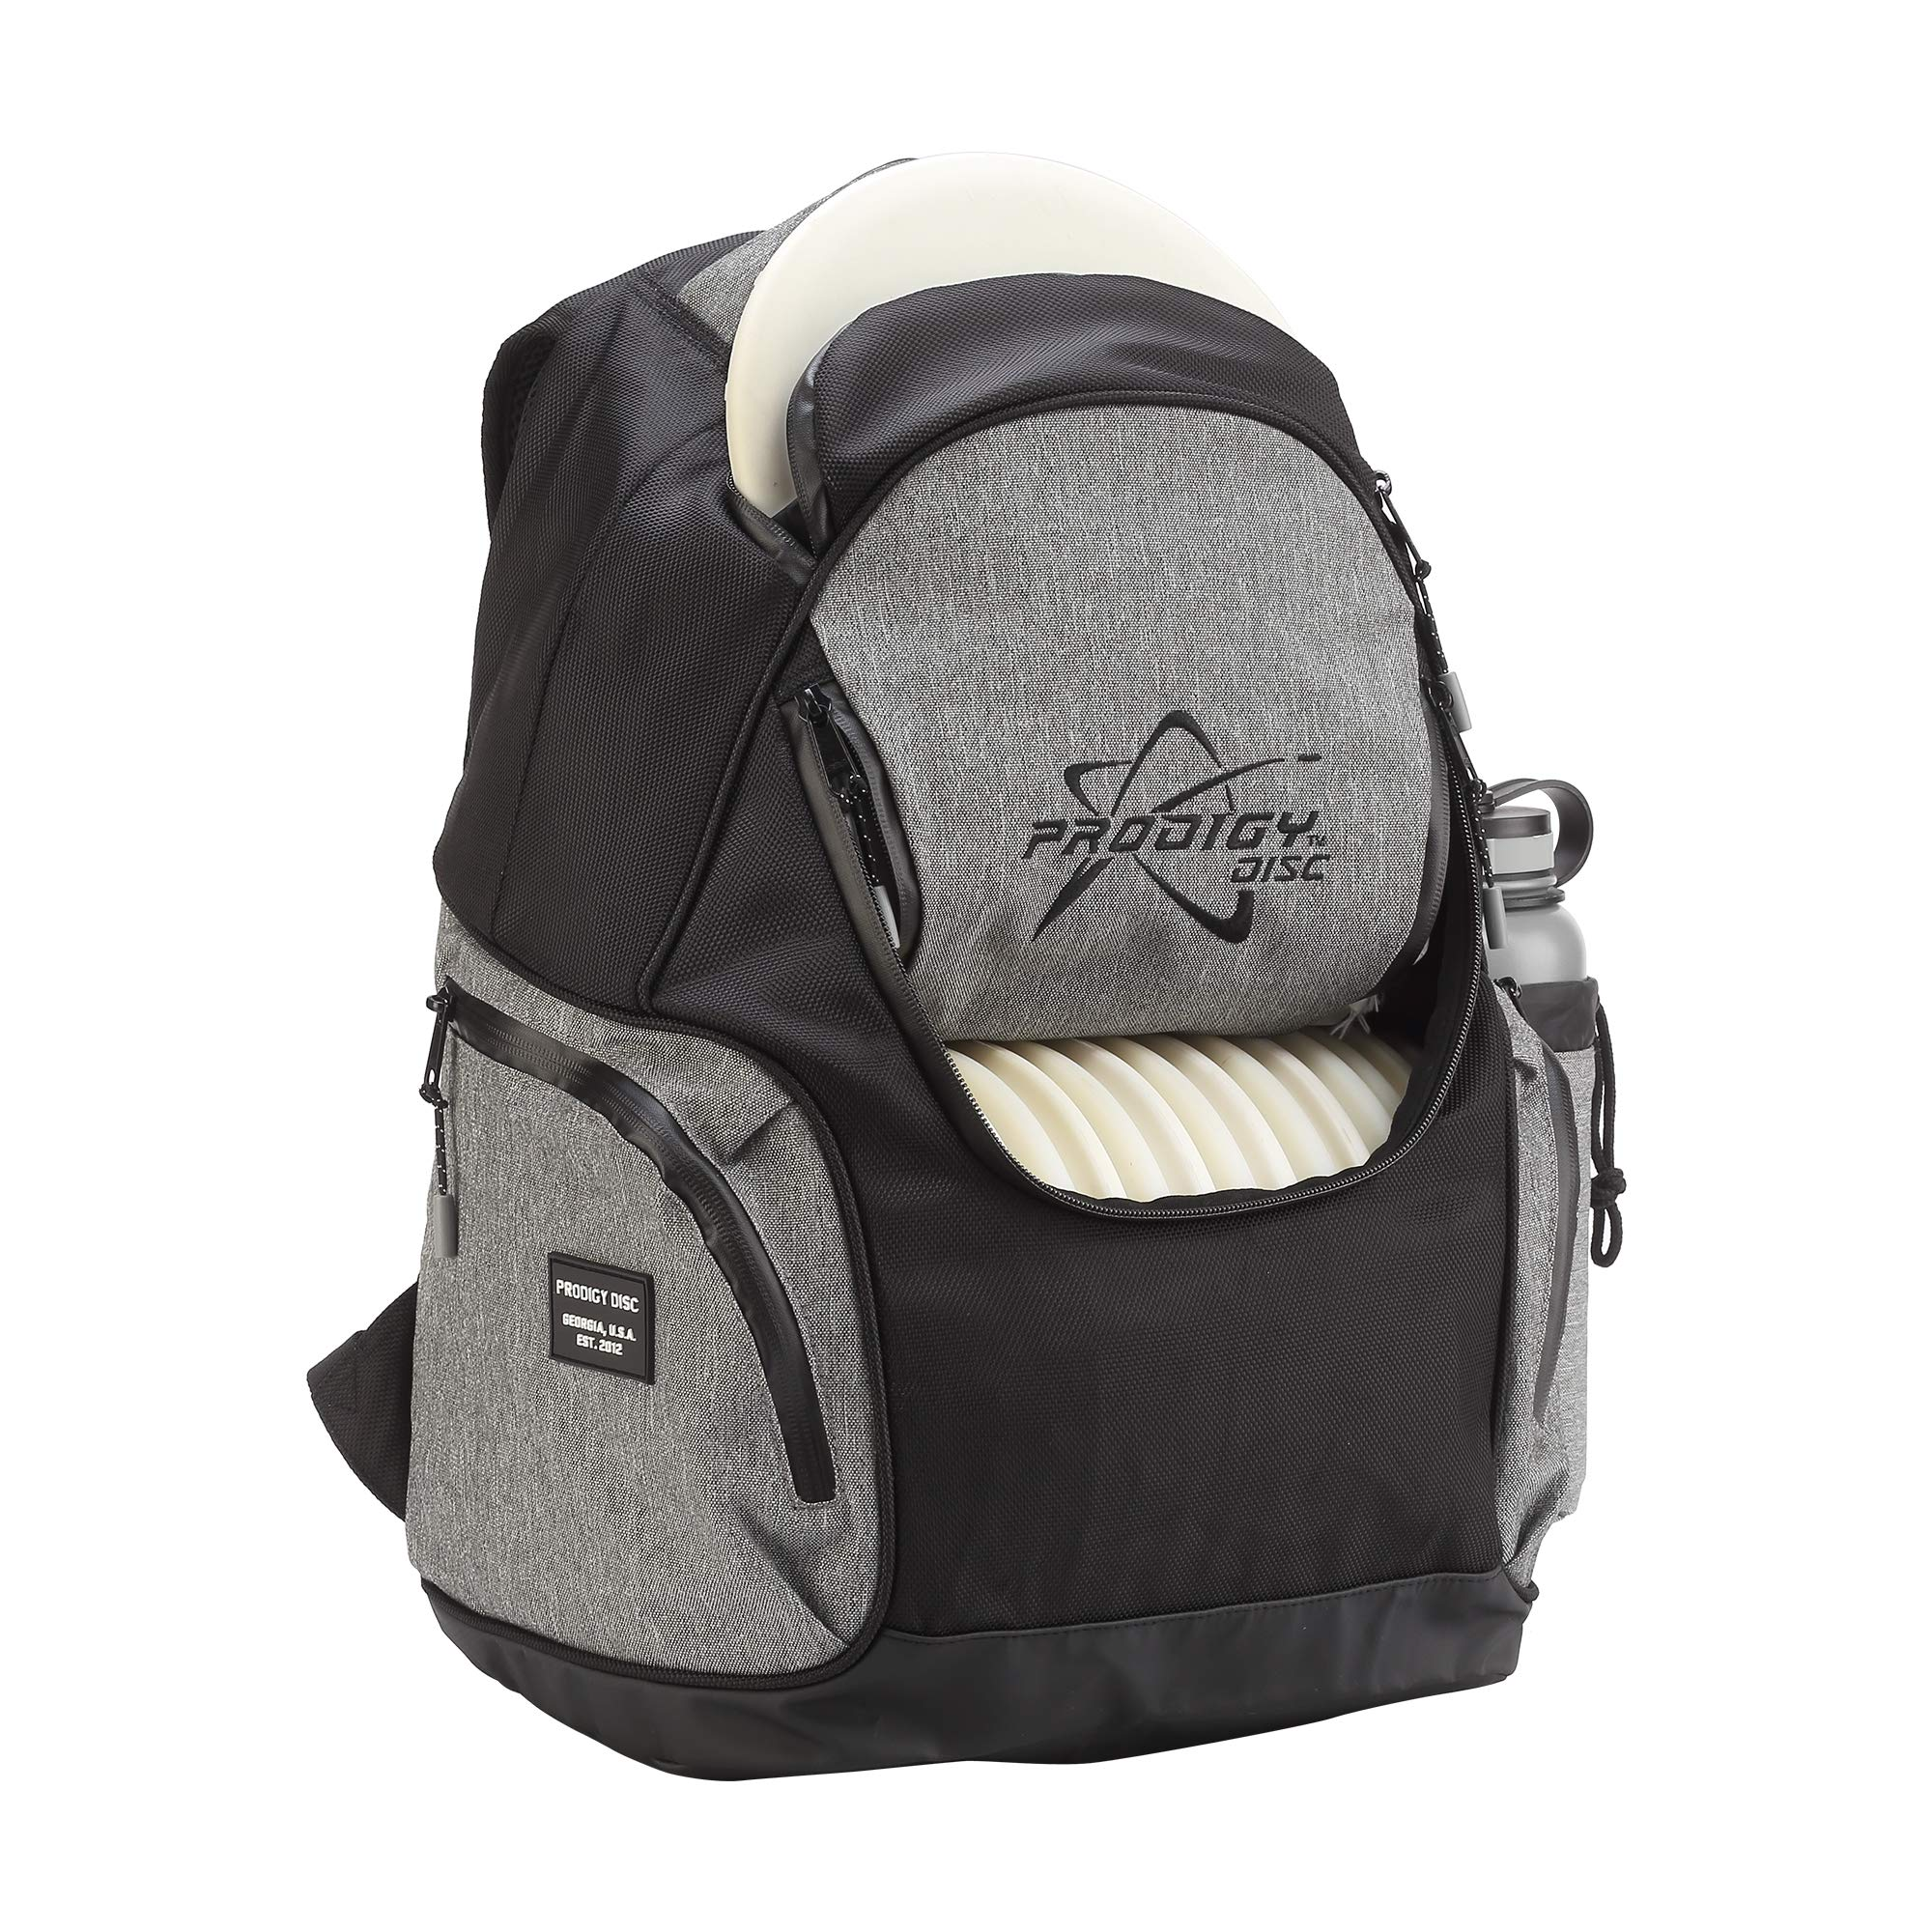 Prodigy Disc BP-3 V2 Disc Golf Backpack - Fits 17 Discs - Beginner Friendly, Affordable (Black/Heather Gray) by Prodigy Disc